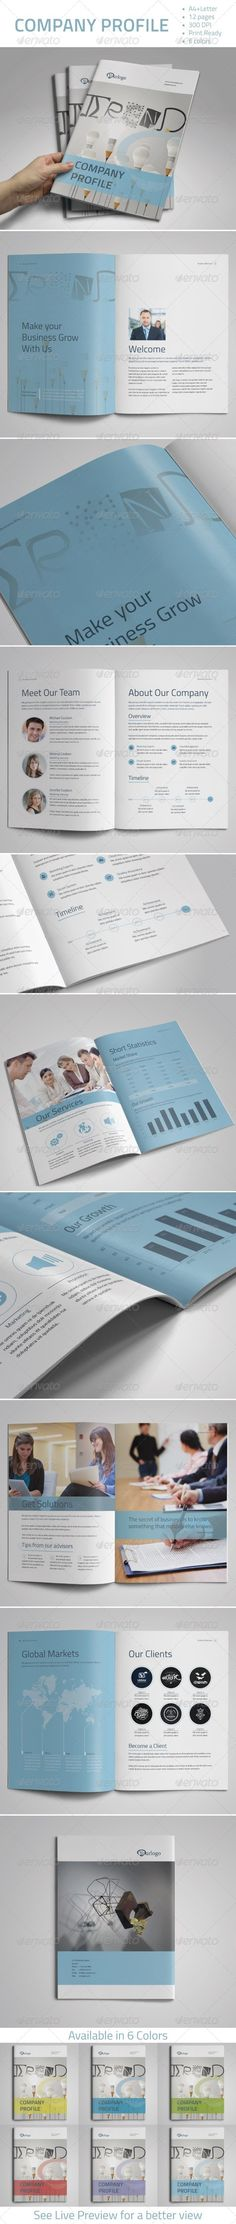 Company Profile Template Company profile, Brochures and Profile - profile company template